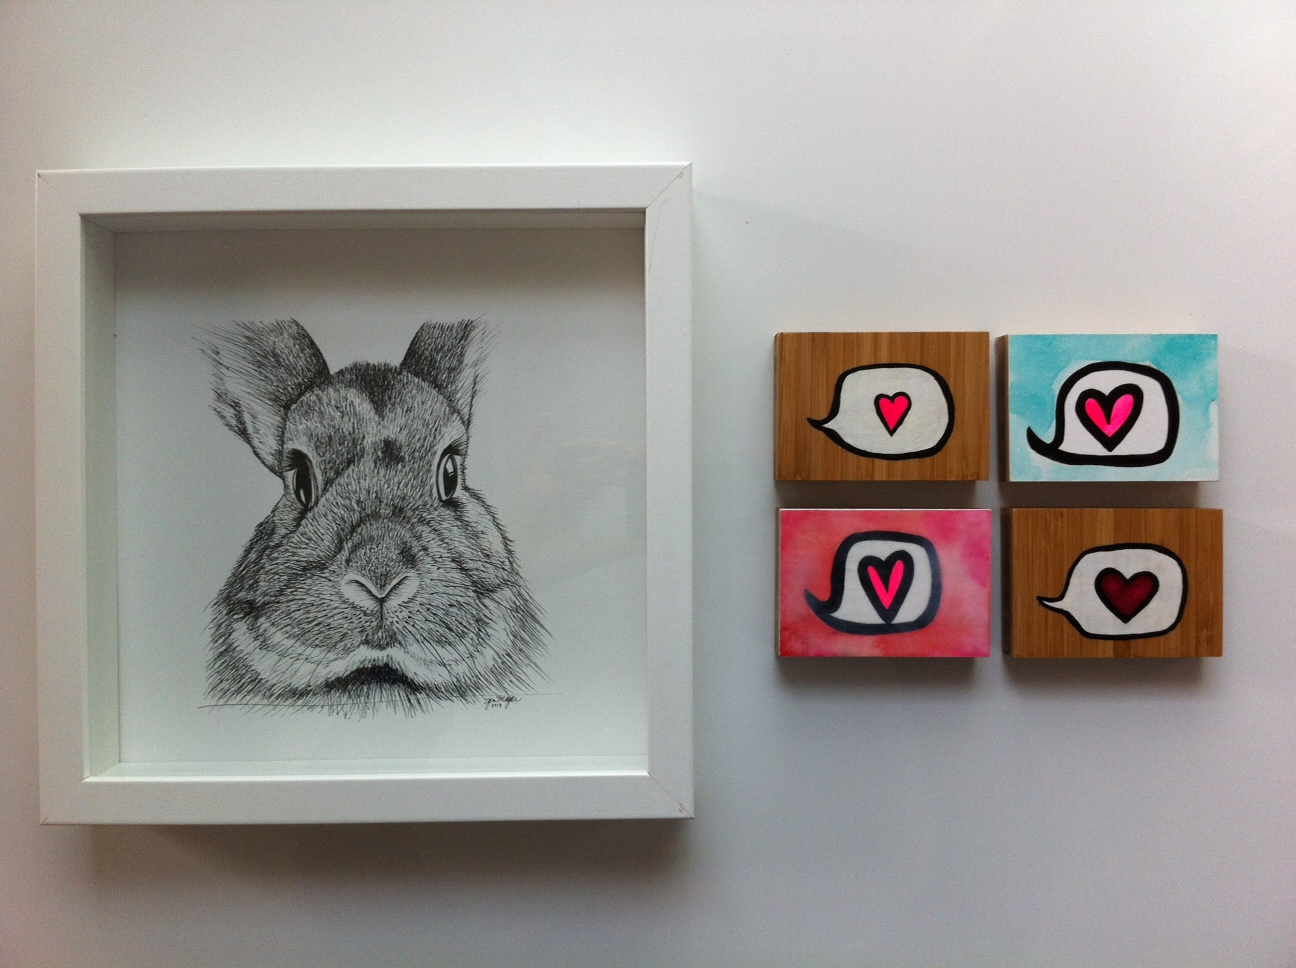 'Bunny' and 'Speak Love' #18,#19,#20 and #21 by Jen Meyer